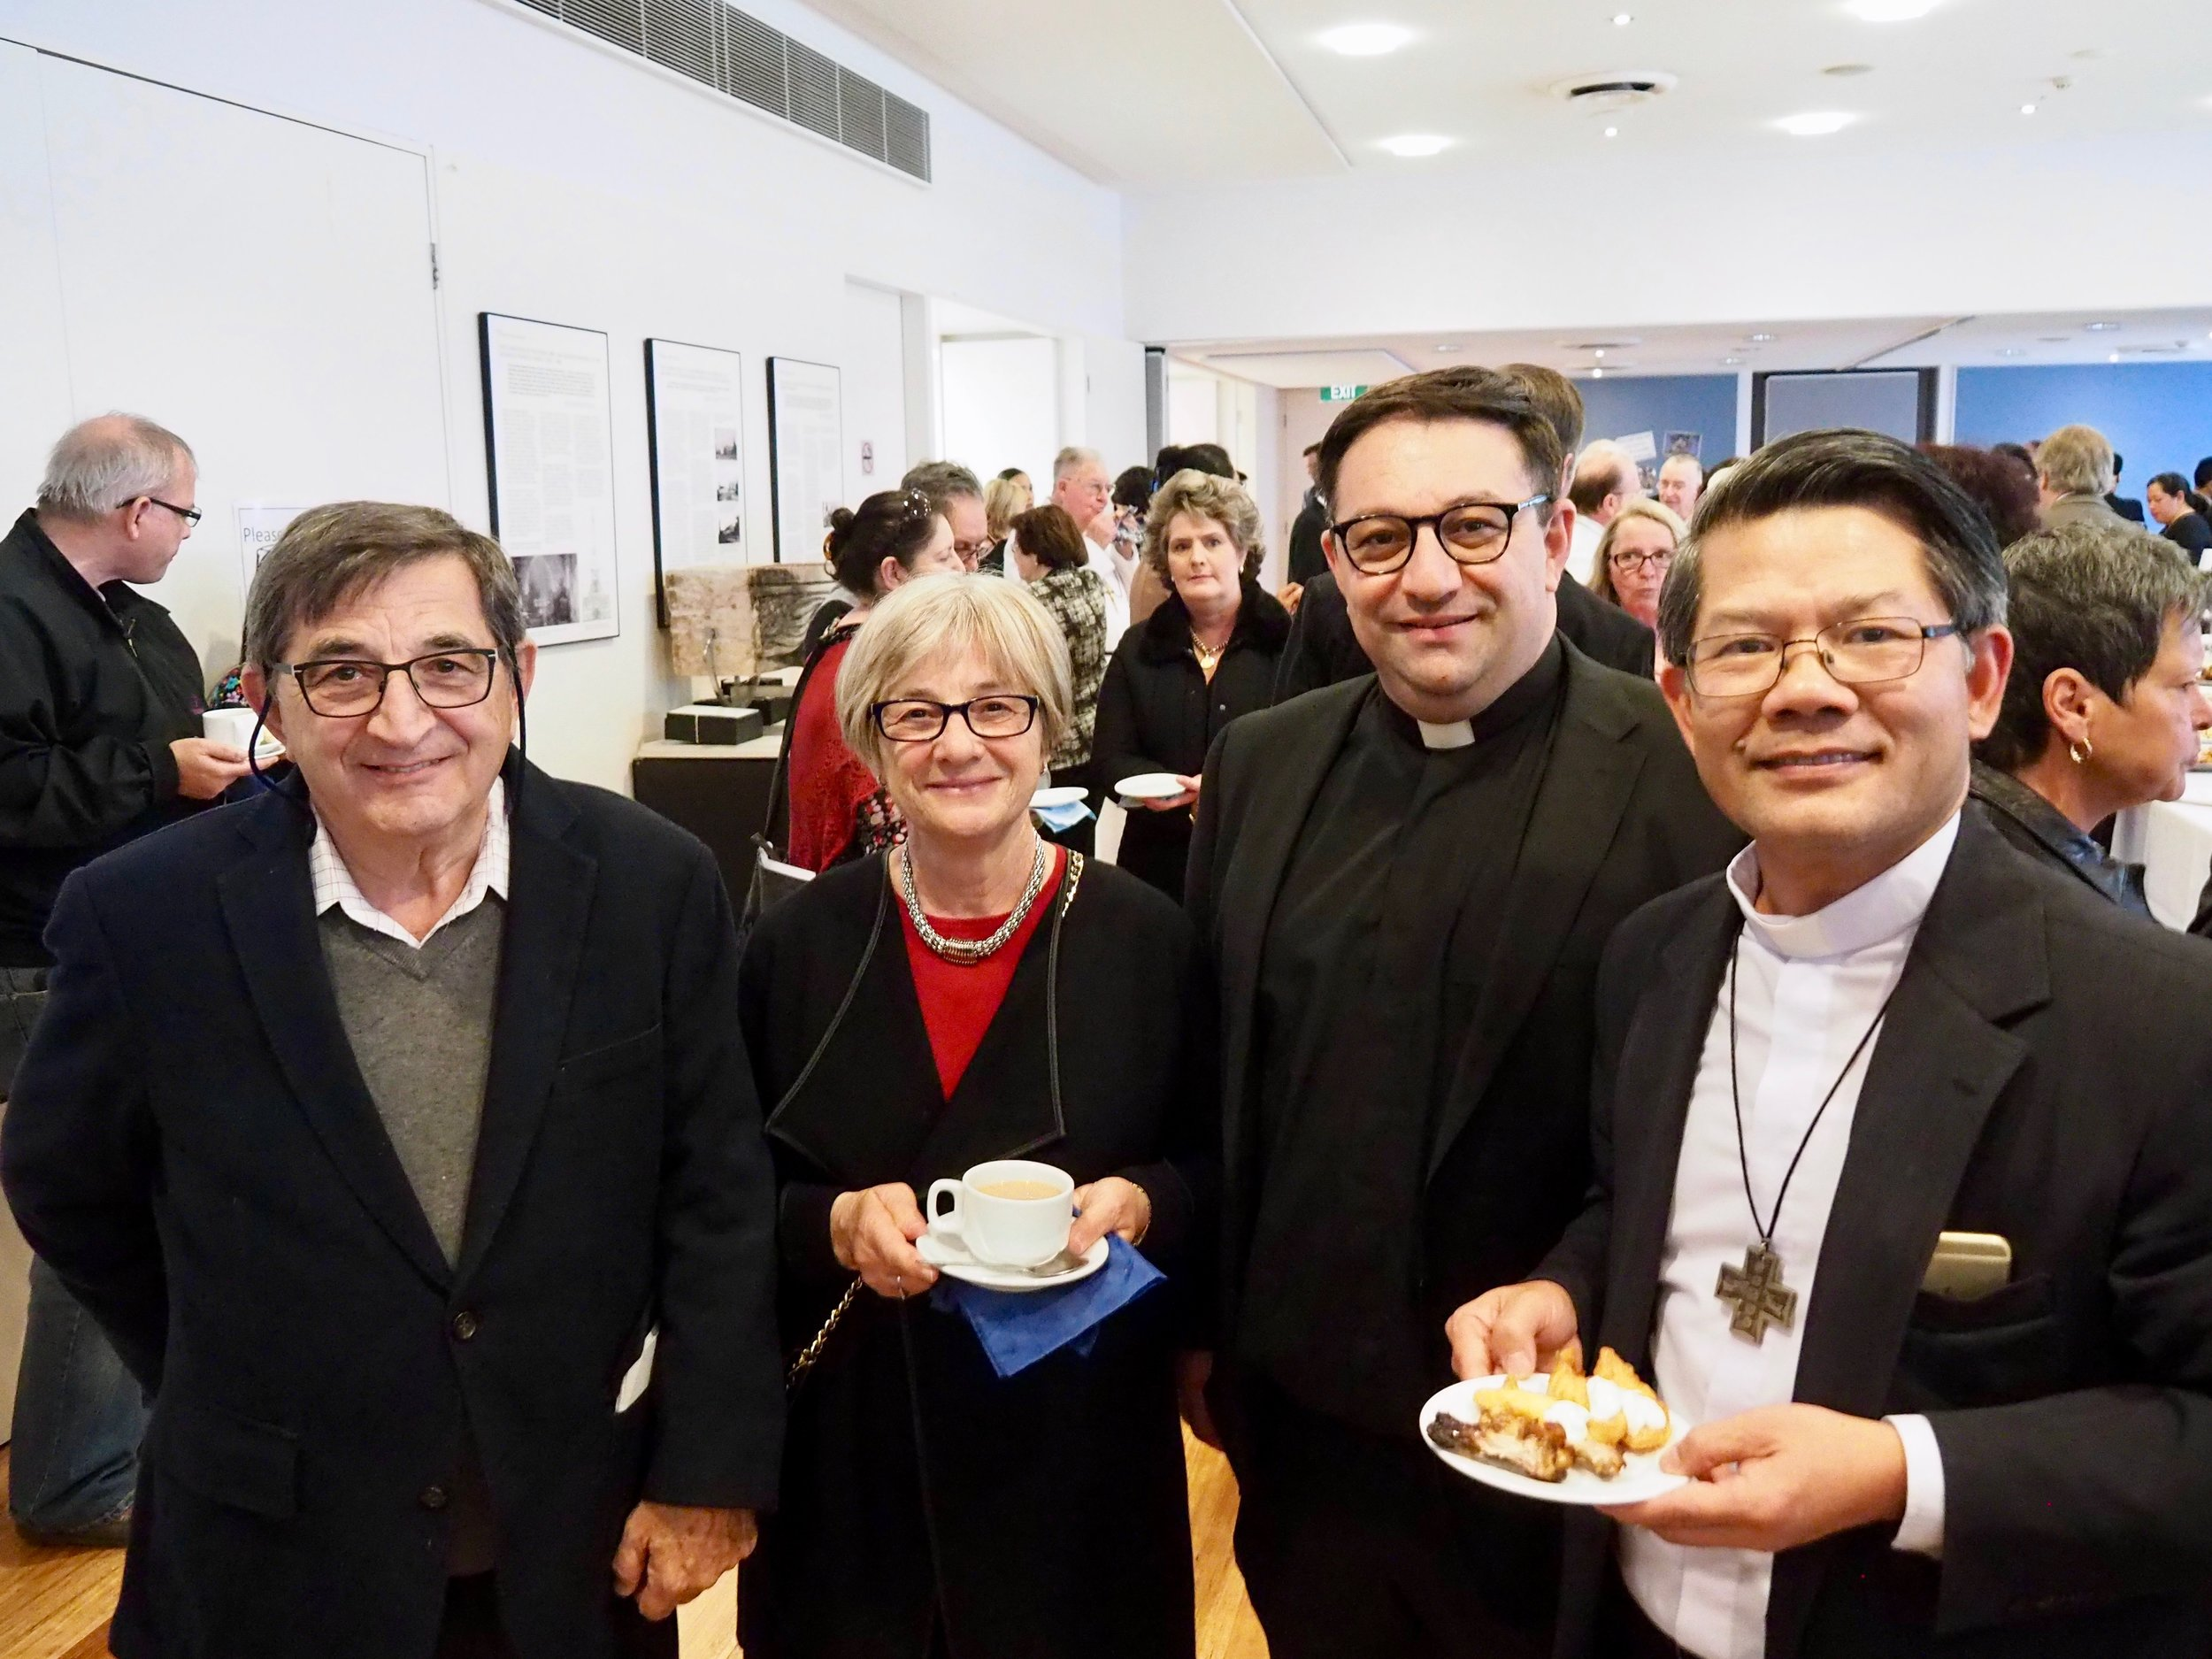 Bicentenary Mass Sydney 12 Aug 2017 Photos by Paul Harris 00144.jpg